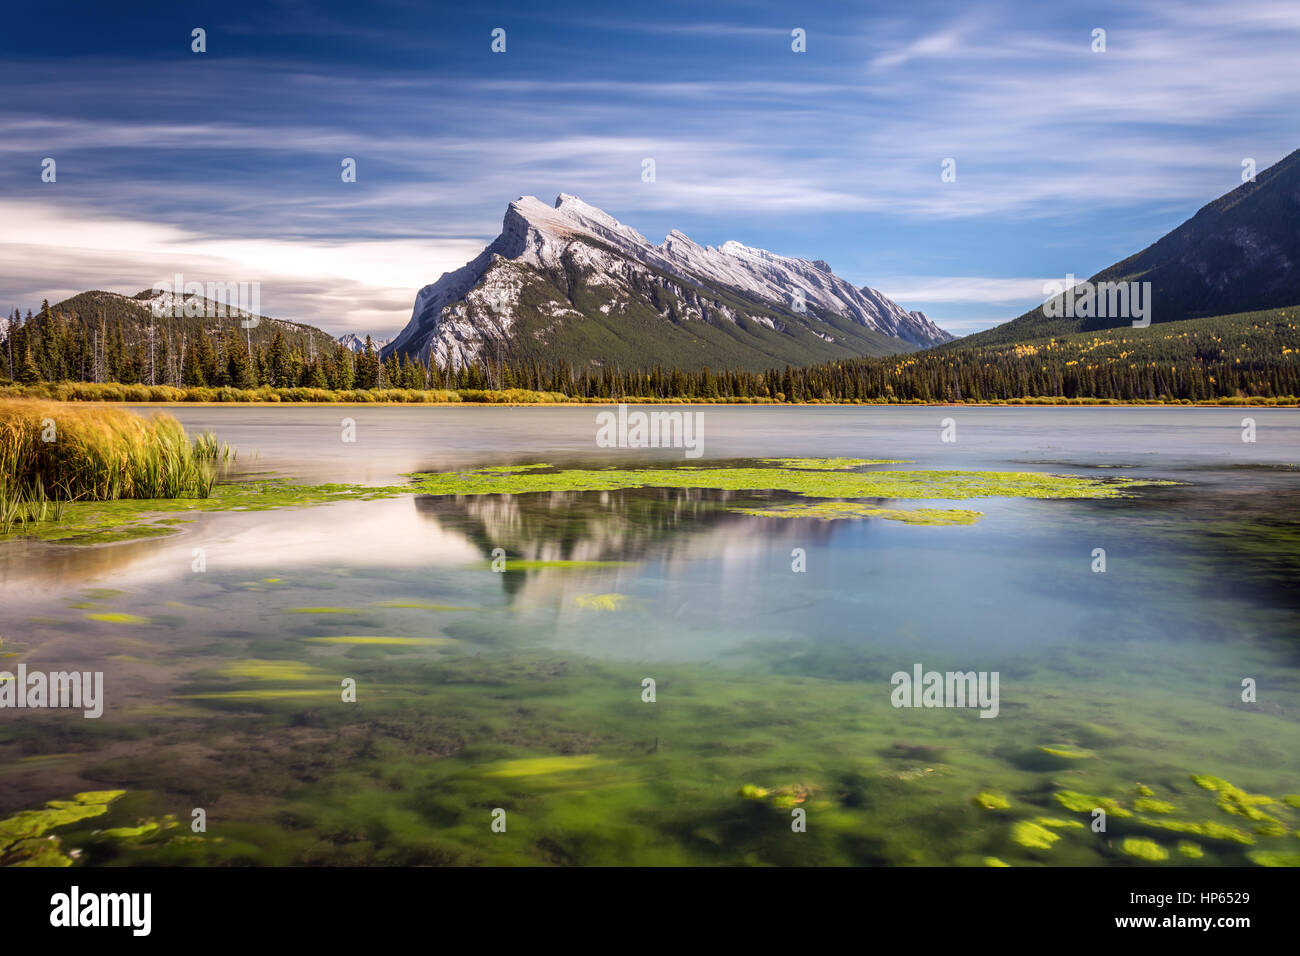 Long exposure of Mount Rundle with reflection from Second Vermilion Lake in Banff National Park, Alberta, Canada. Stock Photo